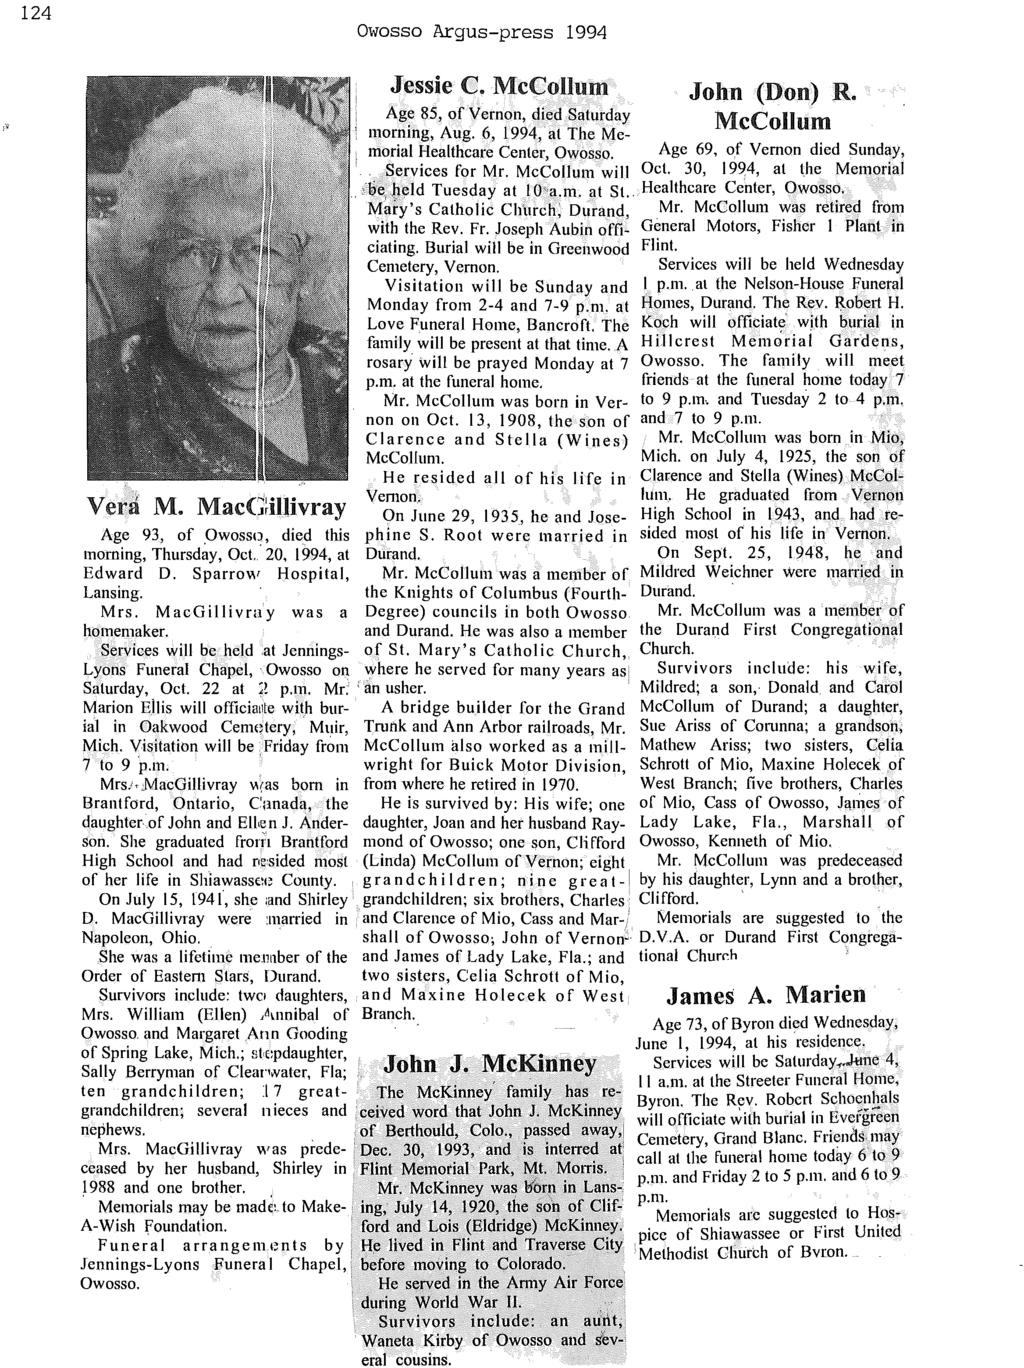 124 Owosso Argus-press 1994 Jessie C. McCollum 'John (Don) R. McCollum Age 85, of Vernon, died Saturday : morning, Aug. 6, 1994, at The Memorial Healthcare Center, Owosso.